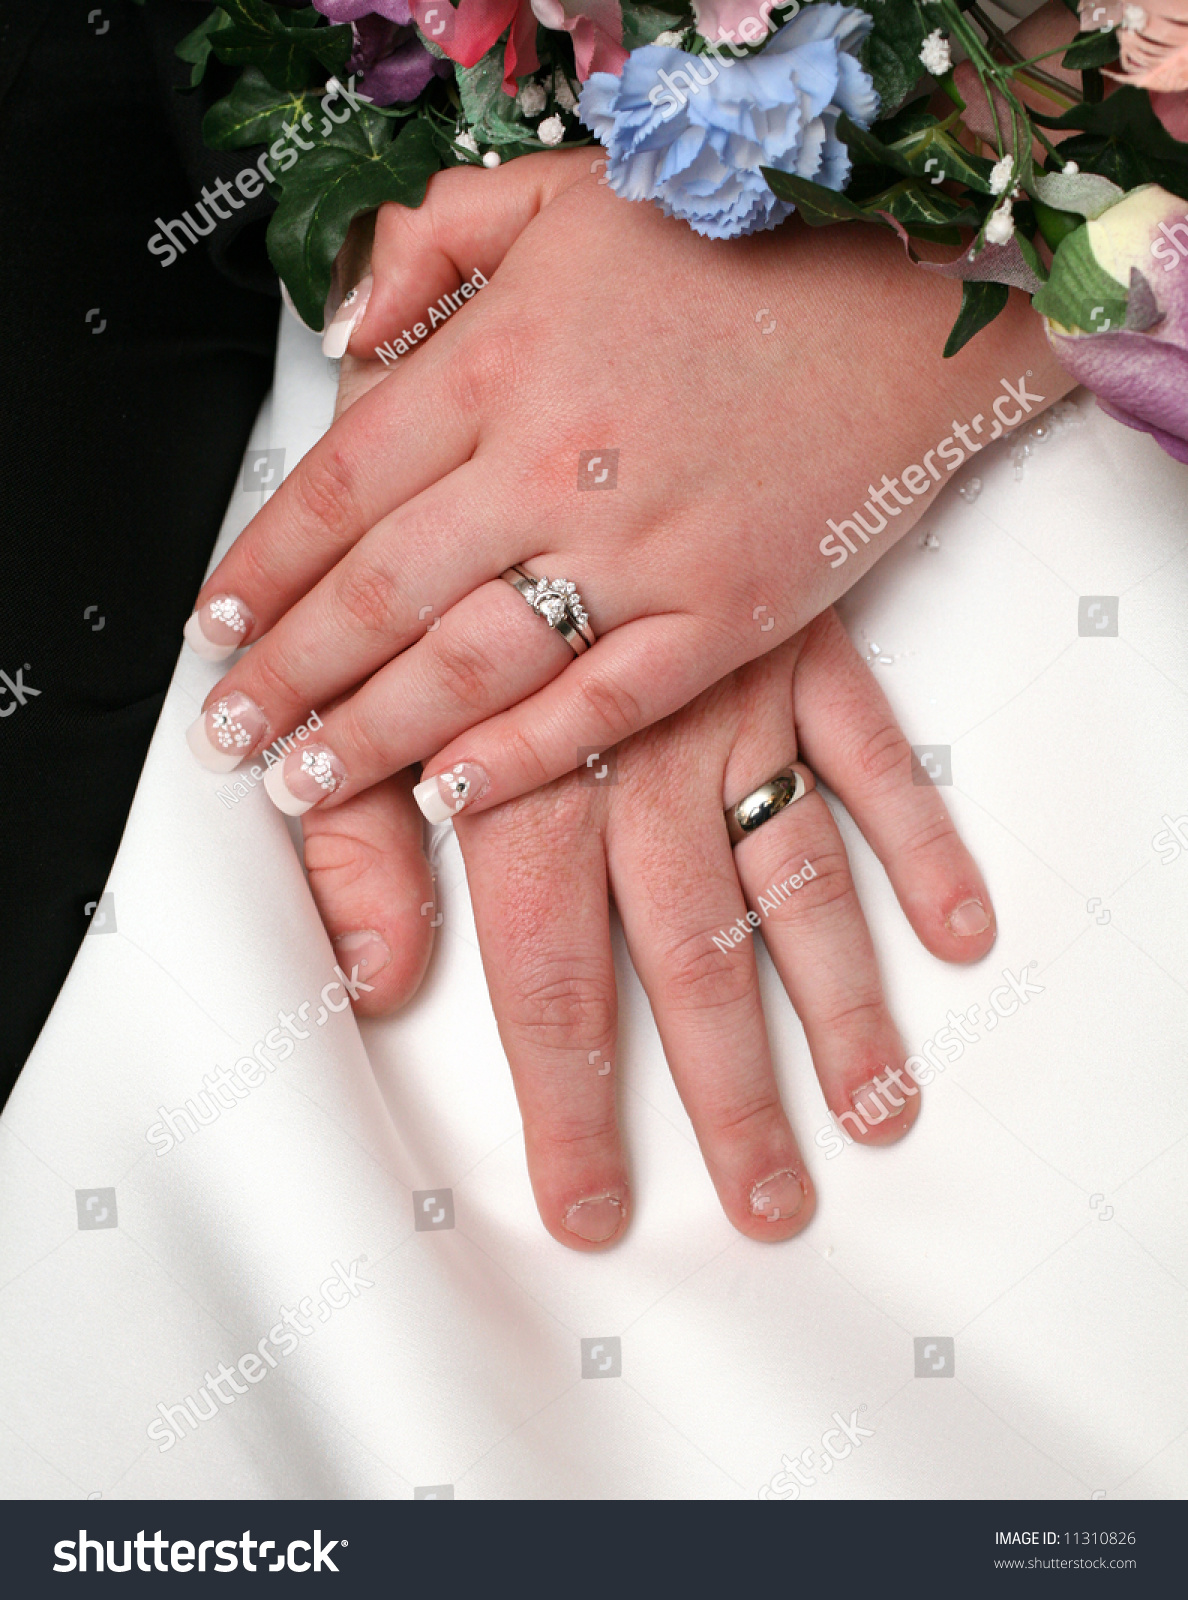 Bride Grooms Hands Rings Wedding Stock Photo 11310826 - Shutterstock